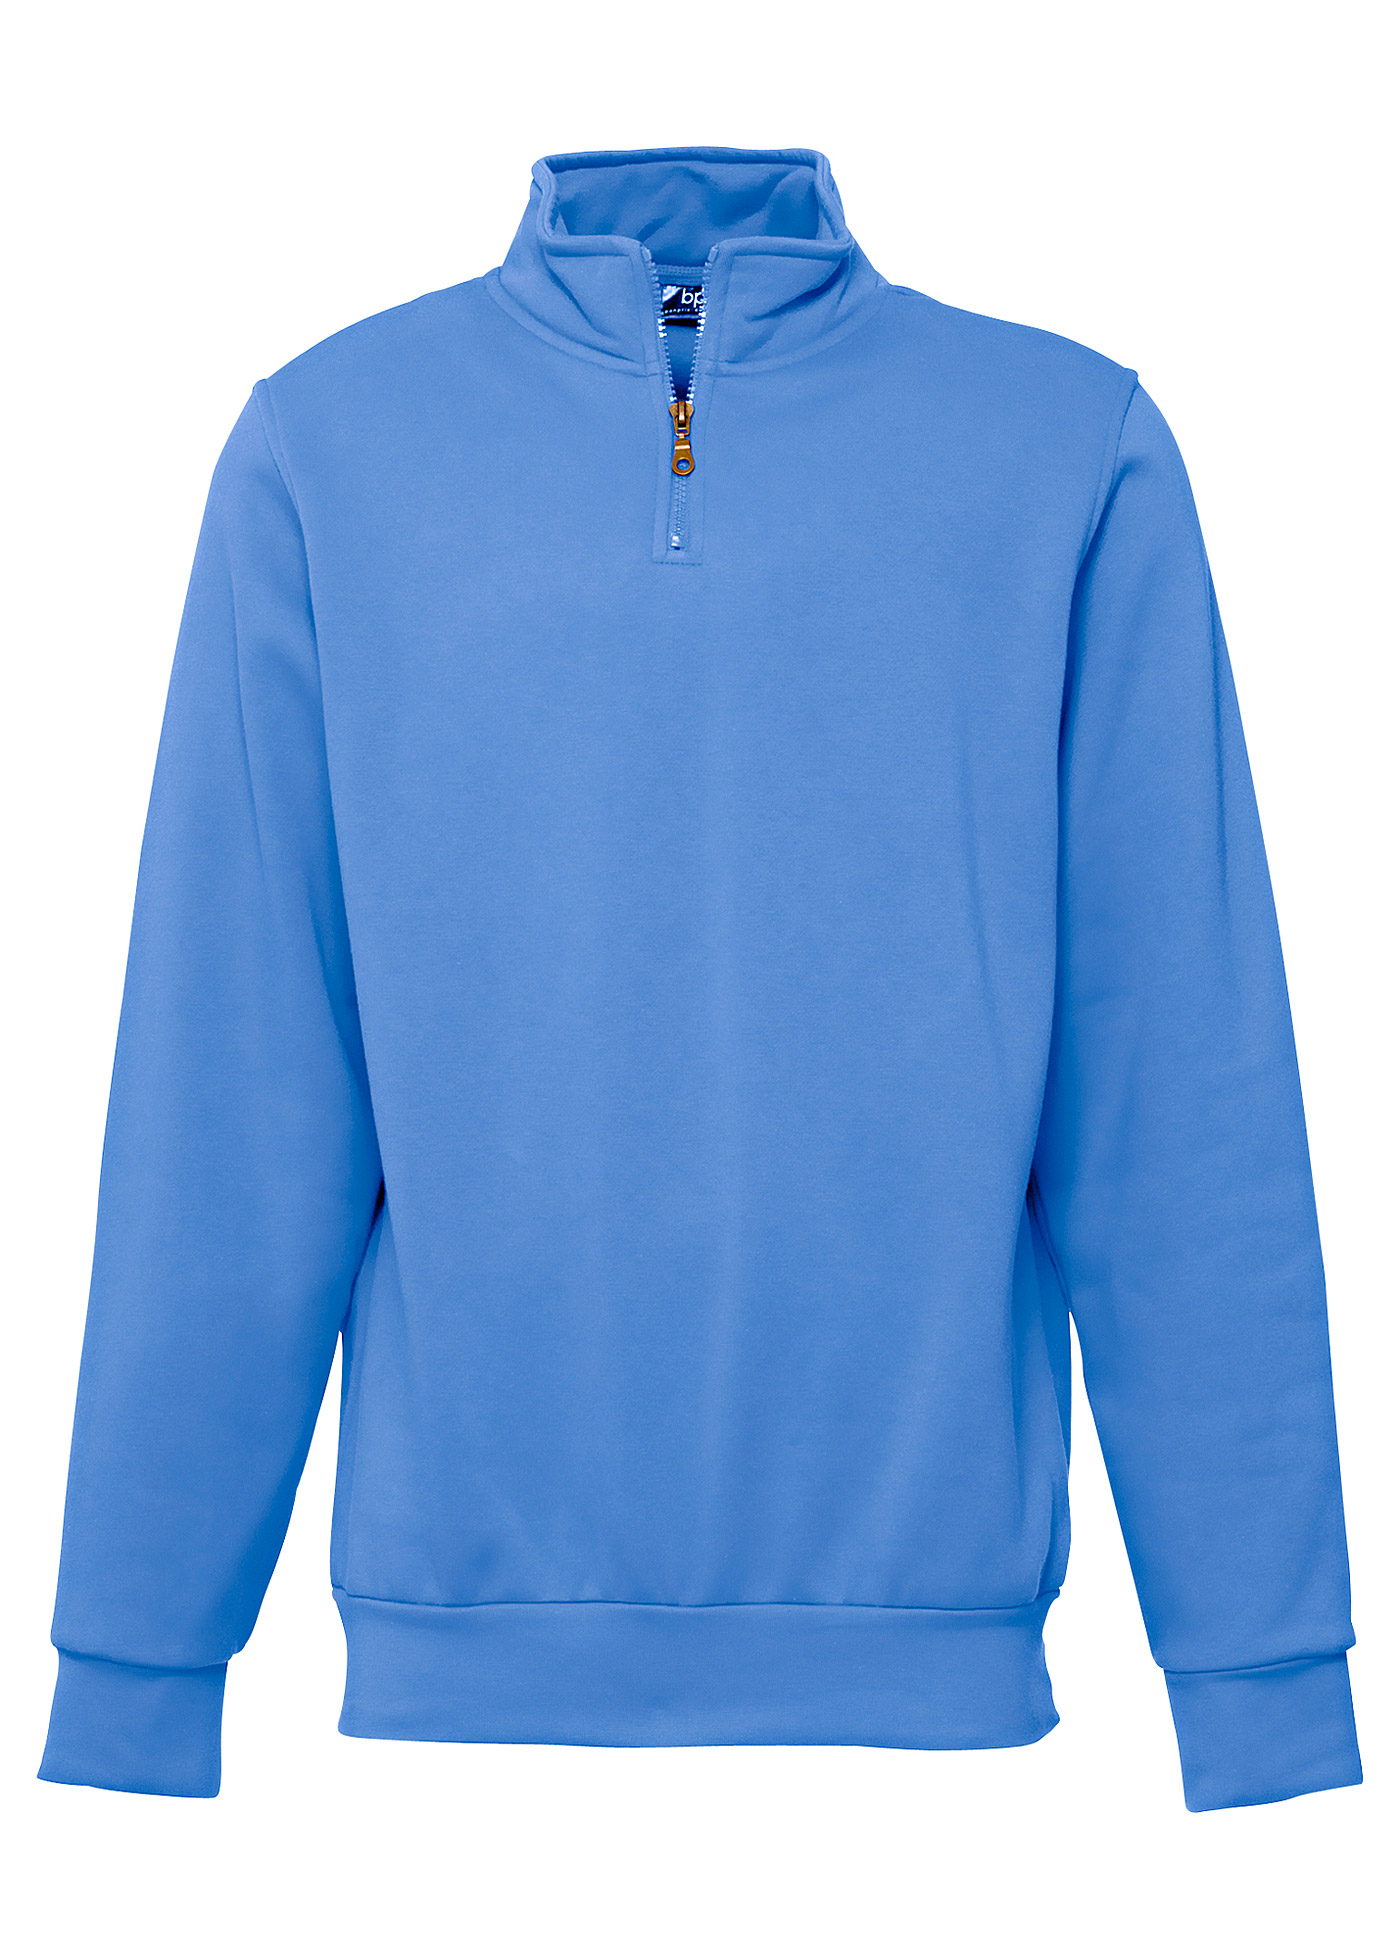 bpc bonprix collection Herren Sweatshirt in blau - bpc collection Herrenmode Herren Modetrends Große Größen Herren